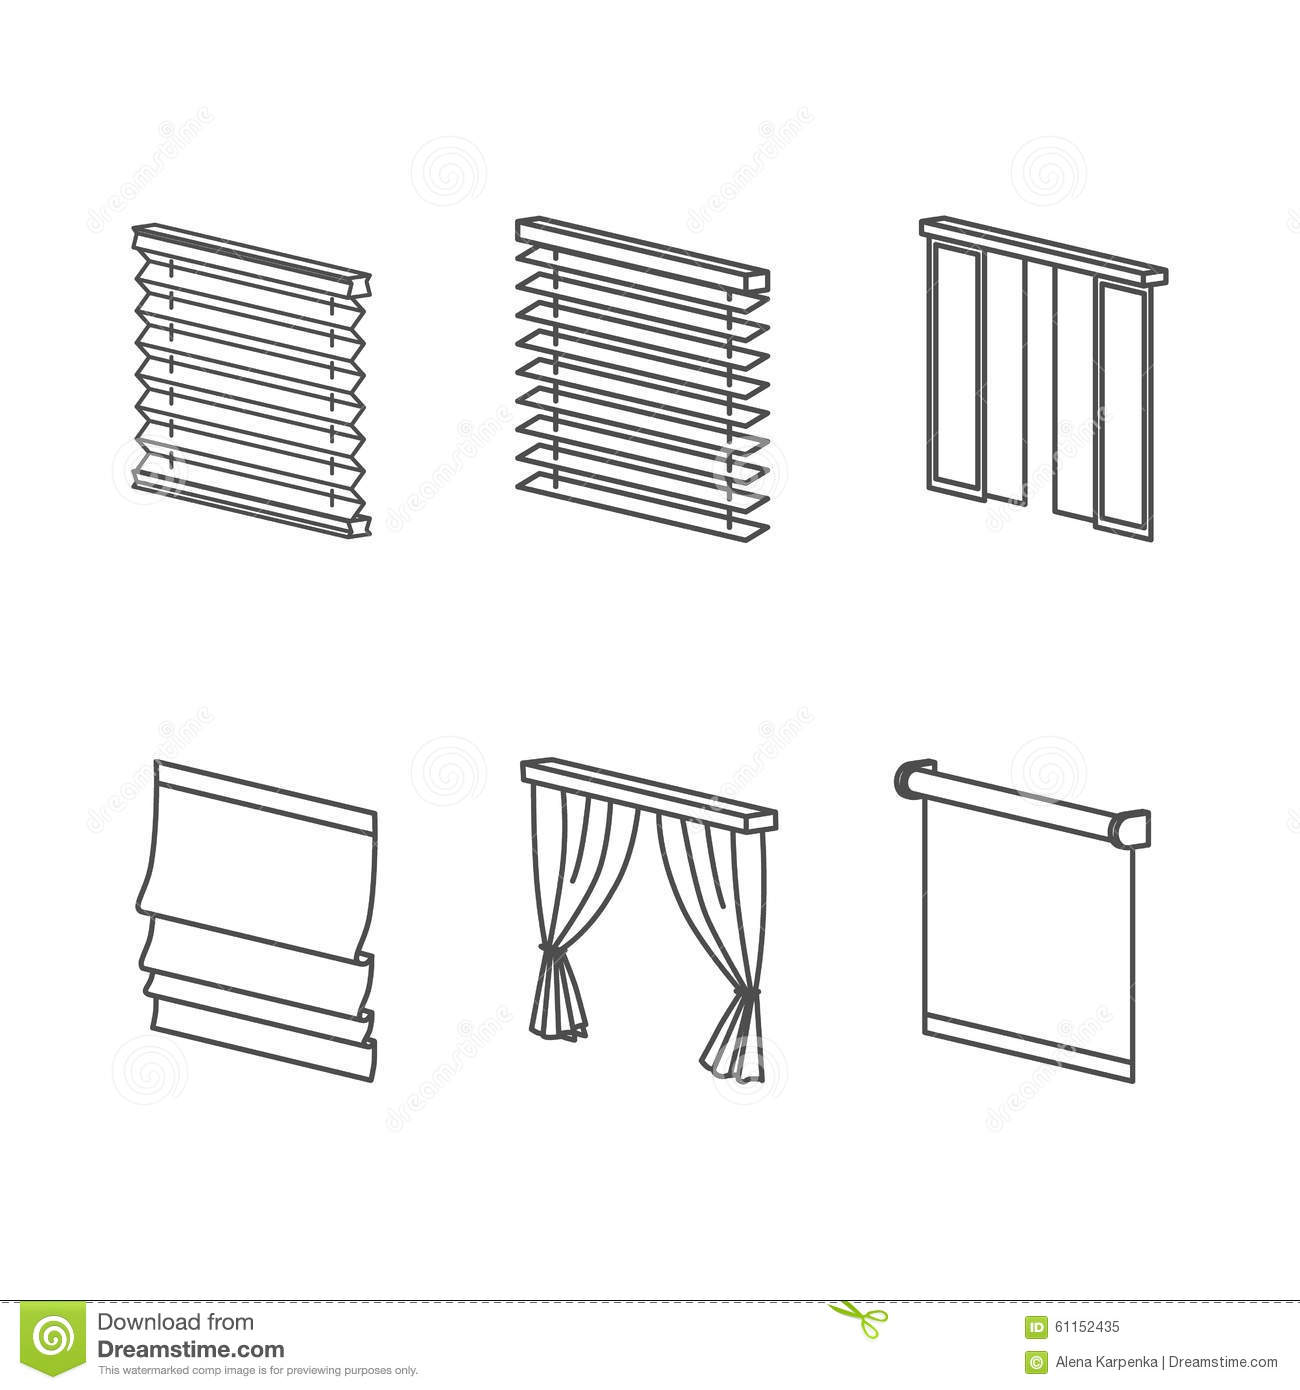 Types of curtains stock illustration illustration of - Tipos de cortinas ...